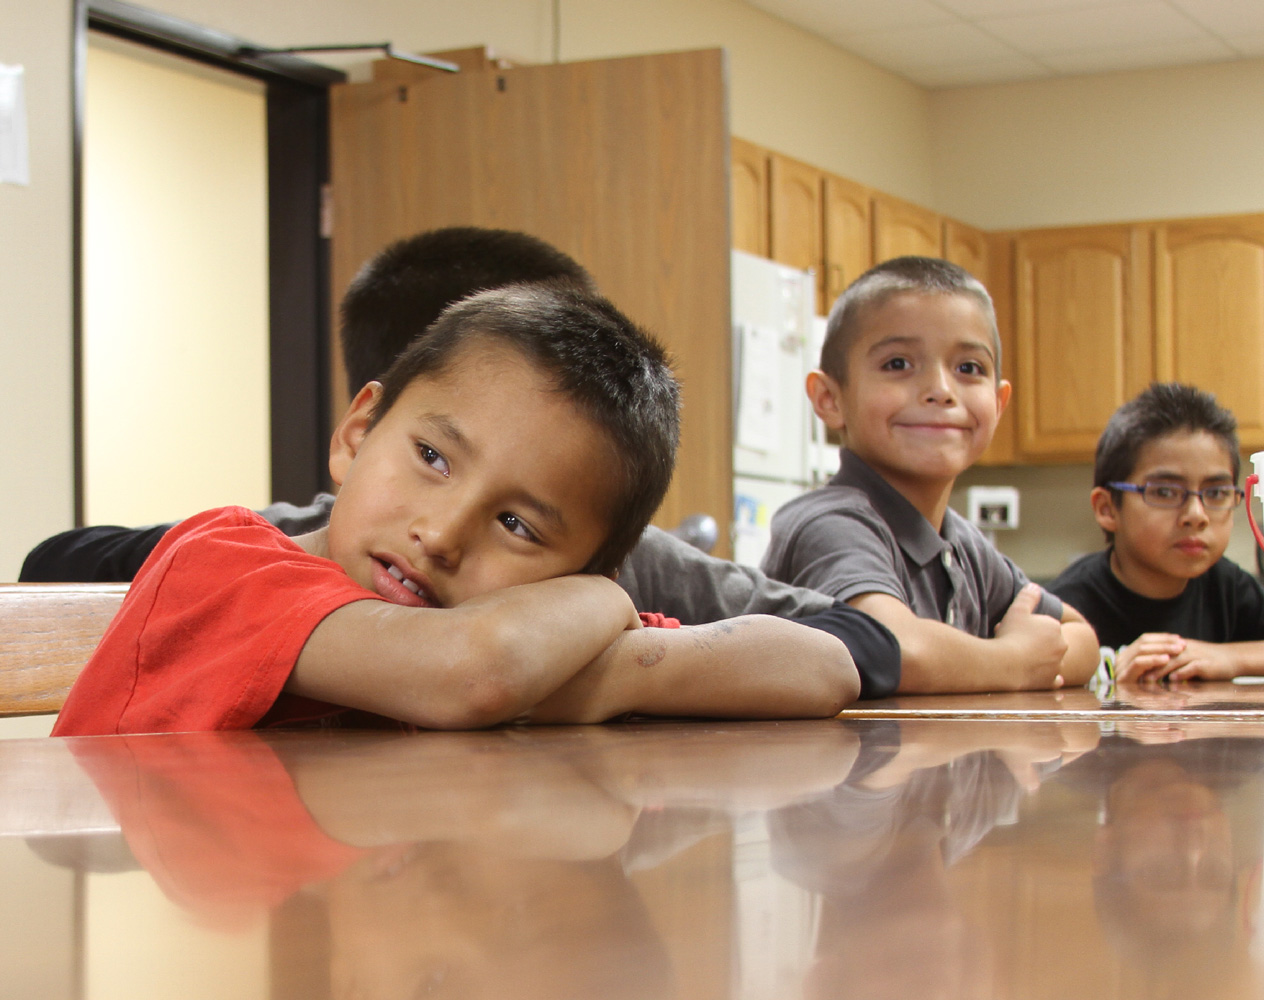 St. Joseph's healing camp helps children work through the loss of people close to them.